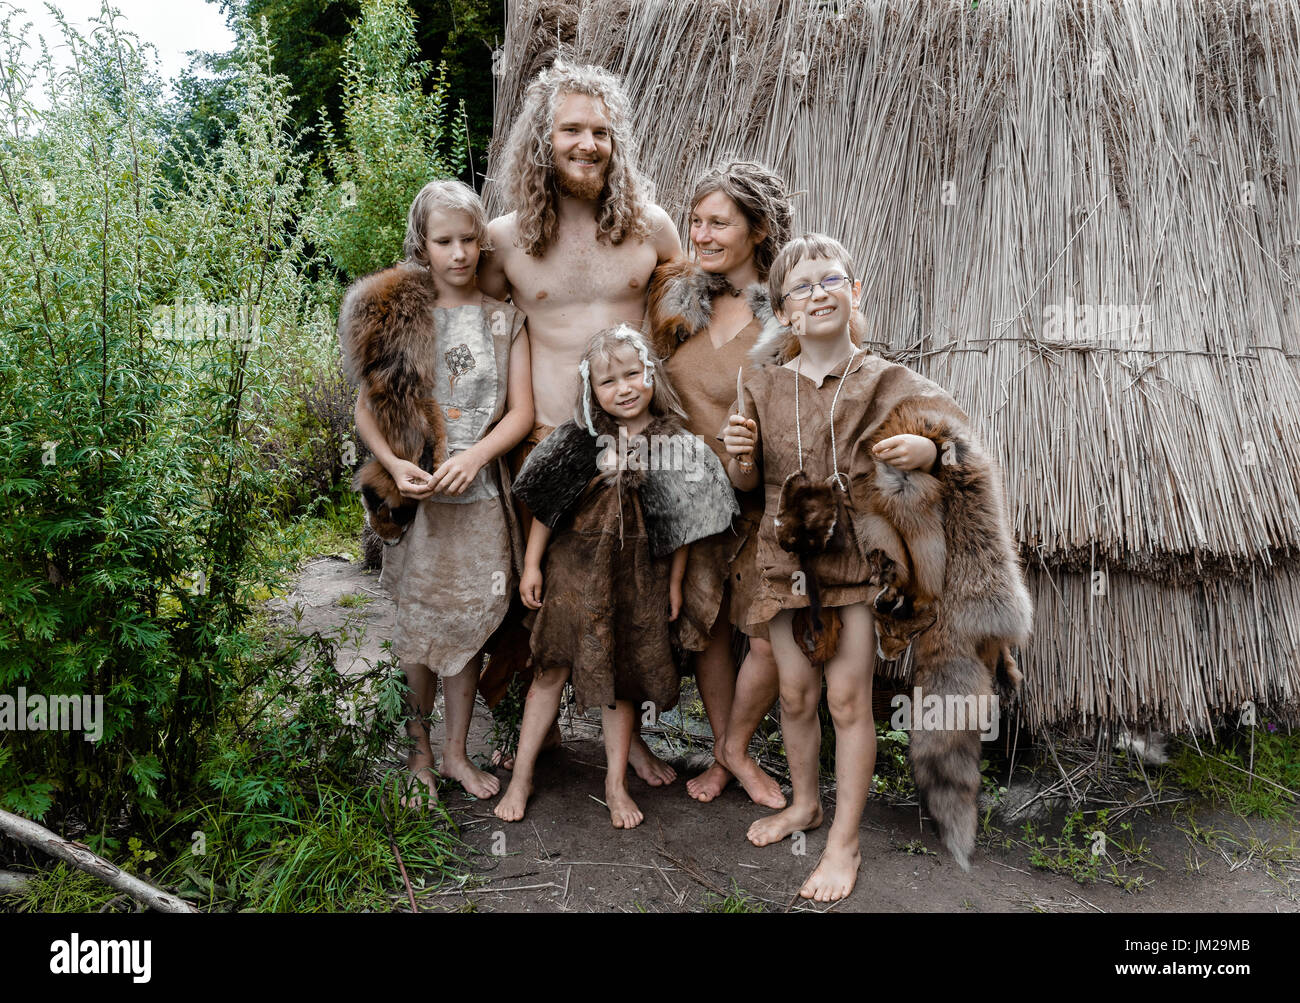 Albersdorf, Germany. 24th July, 2017. Roni and Sofie from Norway and their children Roo, Soini and Tuuli posing outside of their reed hut in the Stone Age Park Dithmarschen in Albersdorf, Germany, 24 July 2017. They are living together under paleolithic, mesolithic and neolithic conditions as part of a live experiment taking place between 24 and 30 July. Photo: Markus Scholz/dpa/Alamy Live News - Stock Image